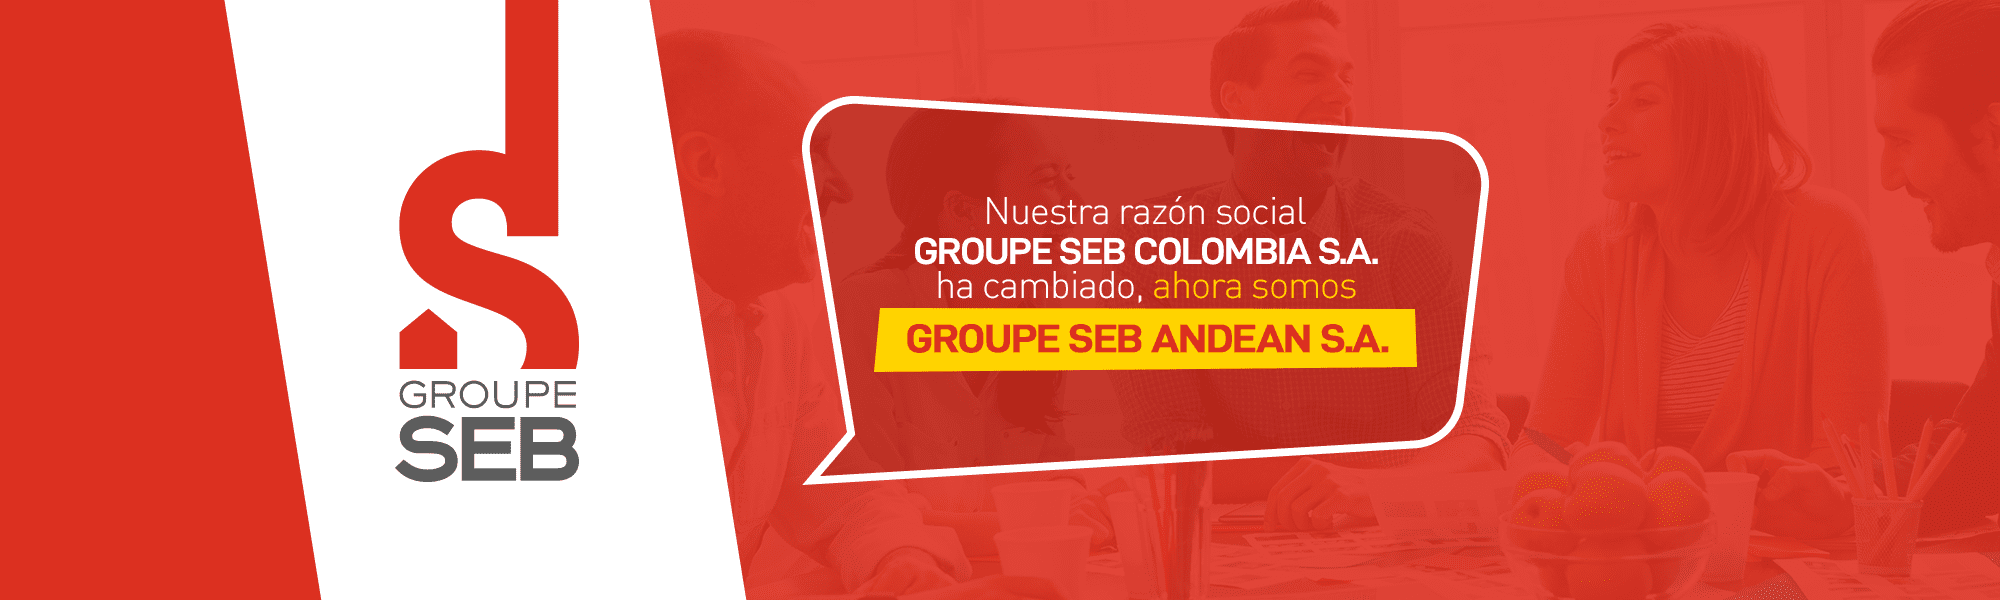 Banner group seb andean s,a